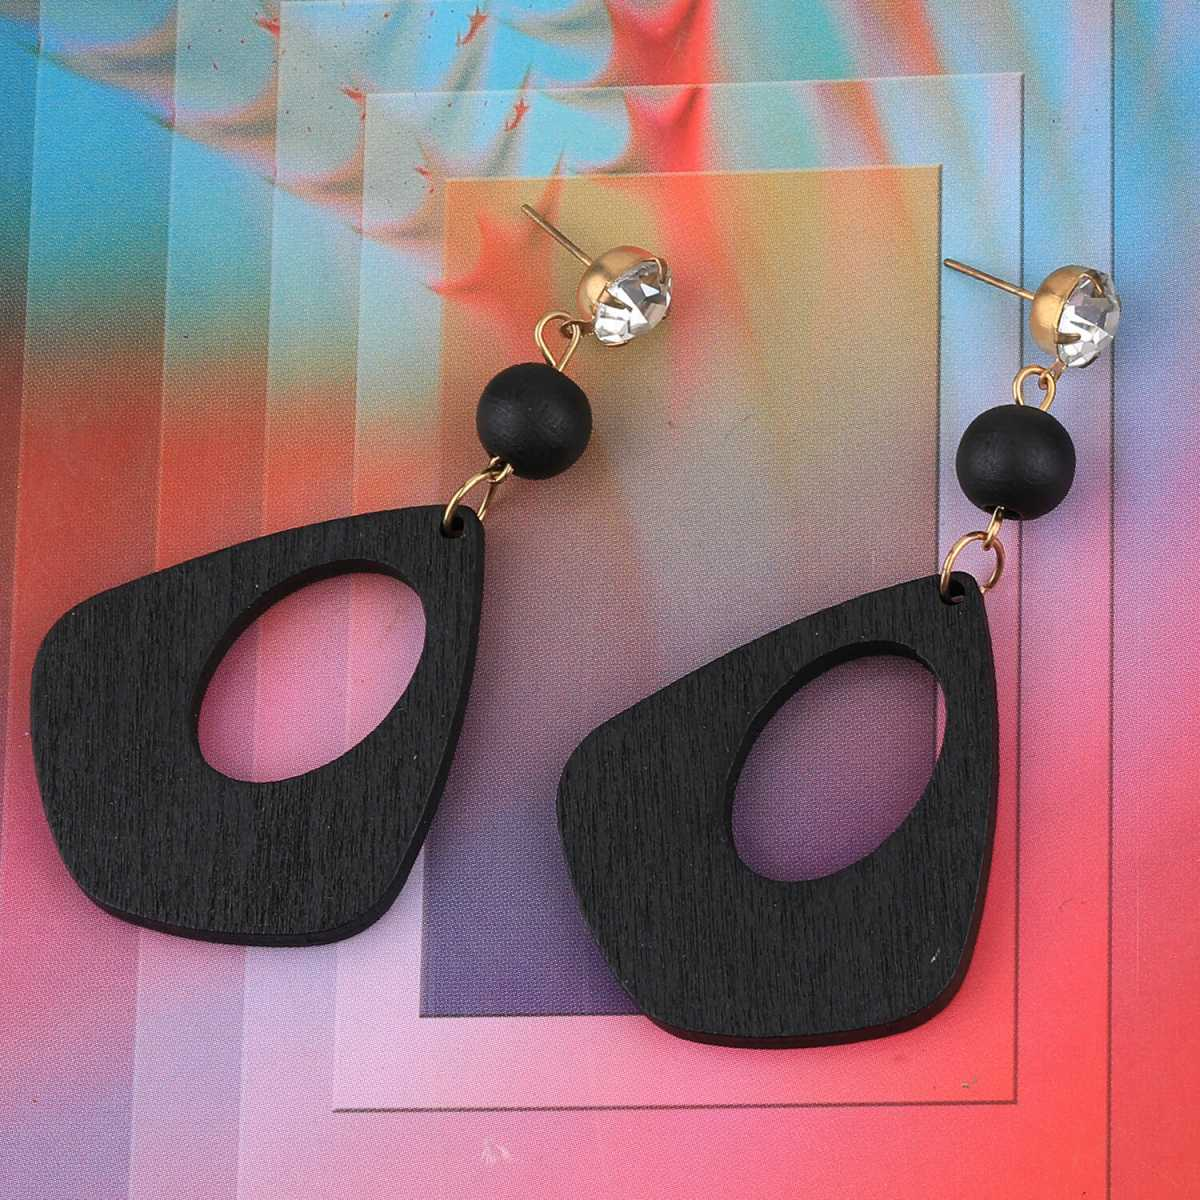 SILVER SHINE Stylish Dangler Diamond Black Wooden Earrings  Light Weight For Girls and Women